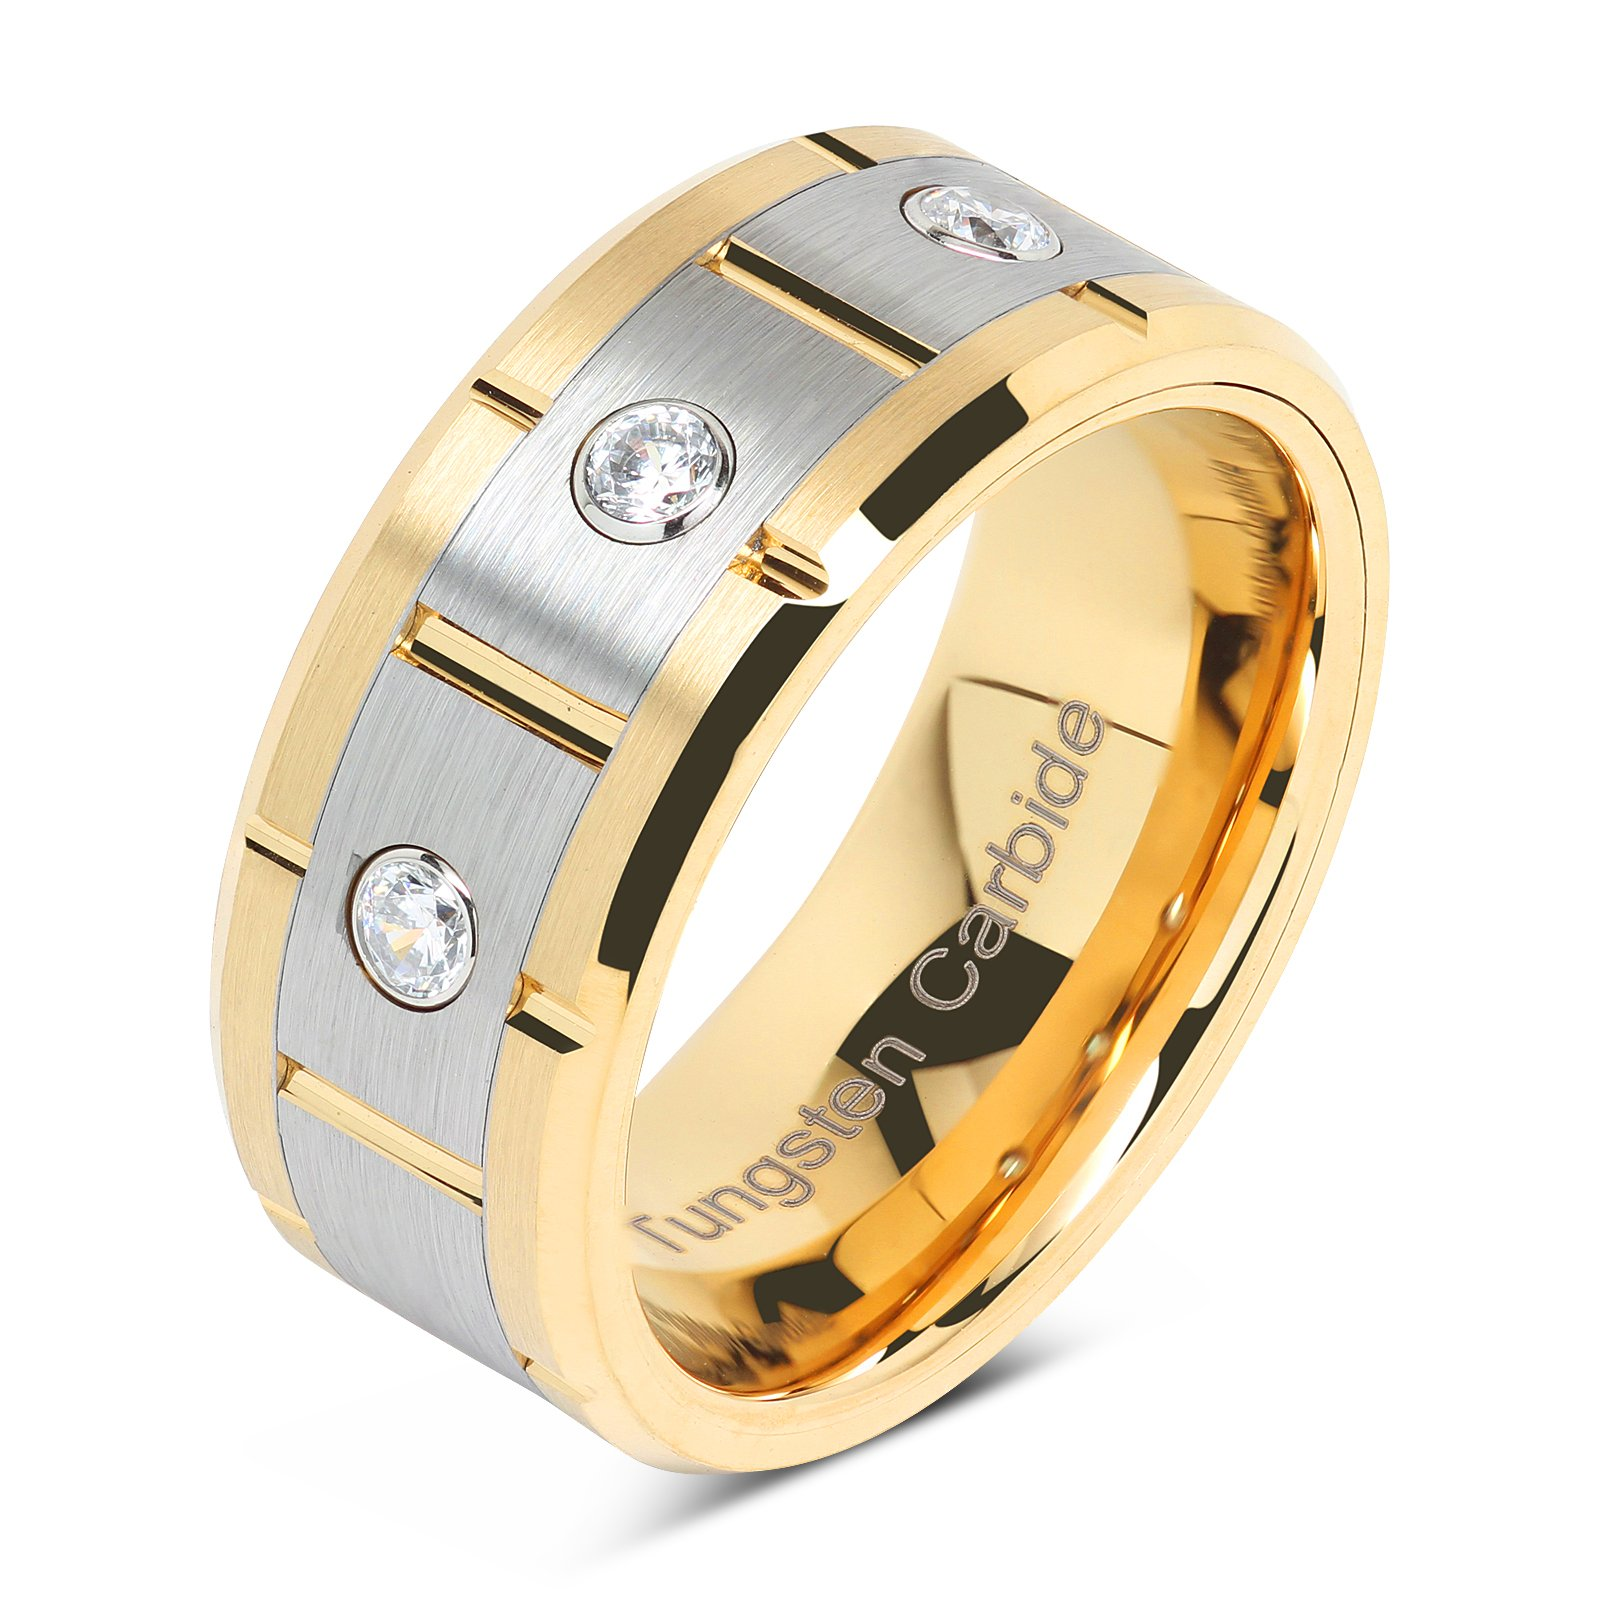 100S JEWELRY Tungsten Rings For Men Women 14k Gold & Silver Center Brushed CZ Inlaid Grooved Size 8-16 (15)